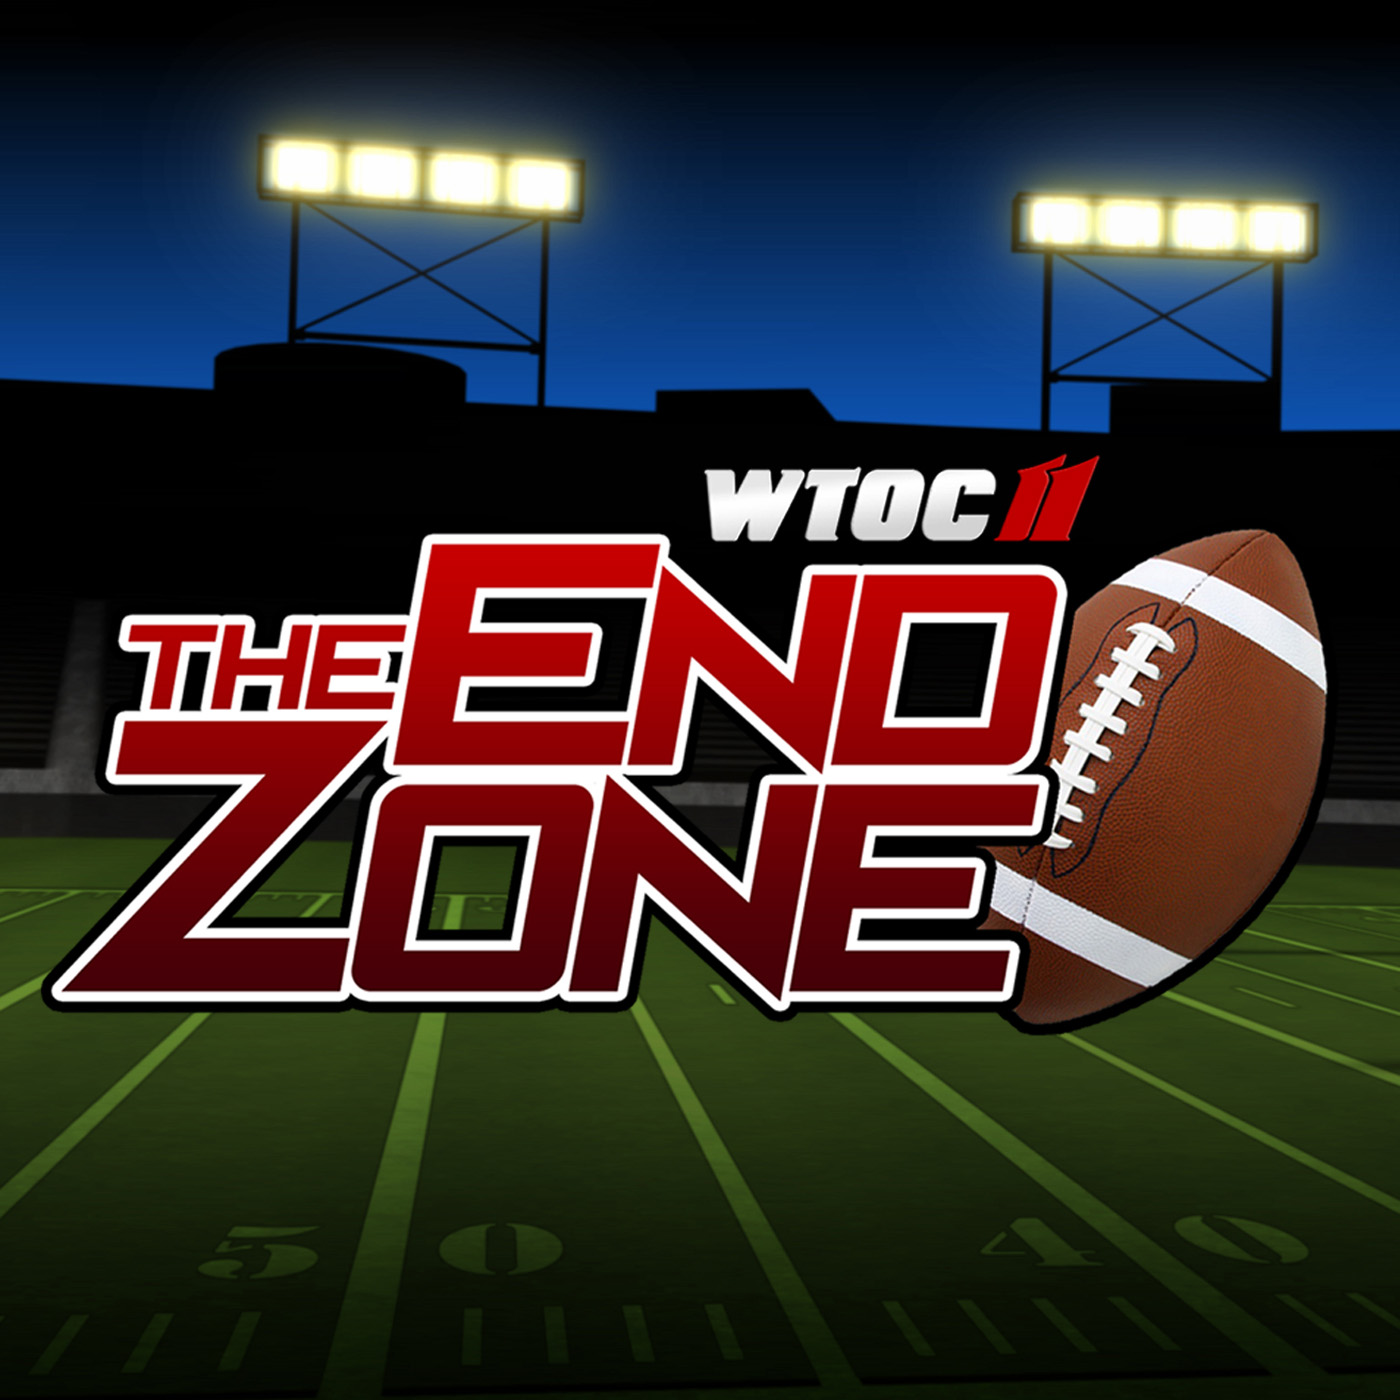 WTOC's The End Zone show art